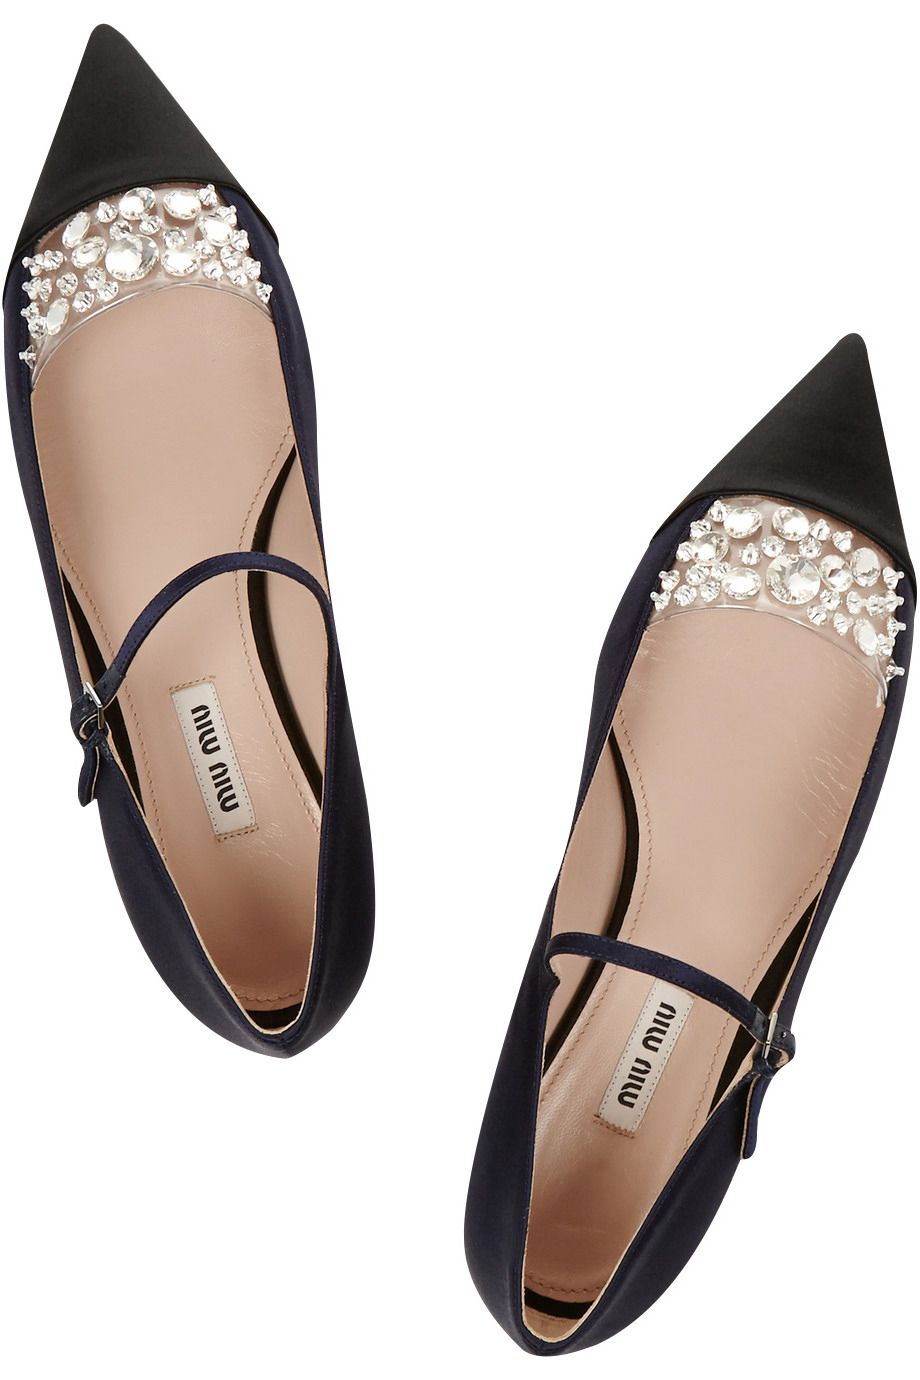 63eed37f1bd8b Miu Miu Crystal Embellished Satin Pointed Toe Flats.